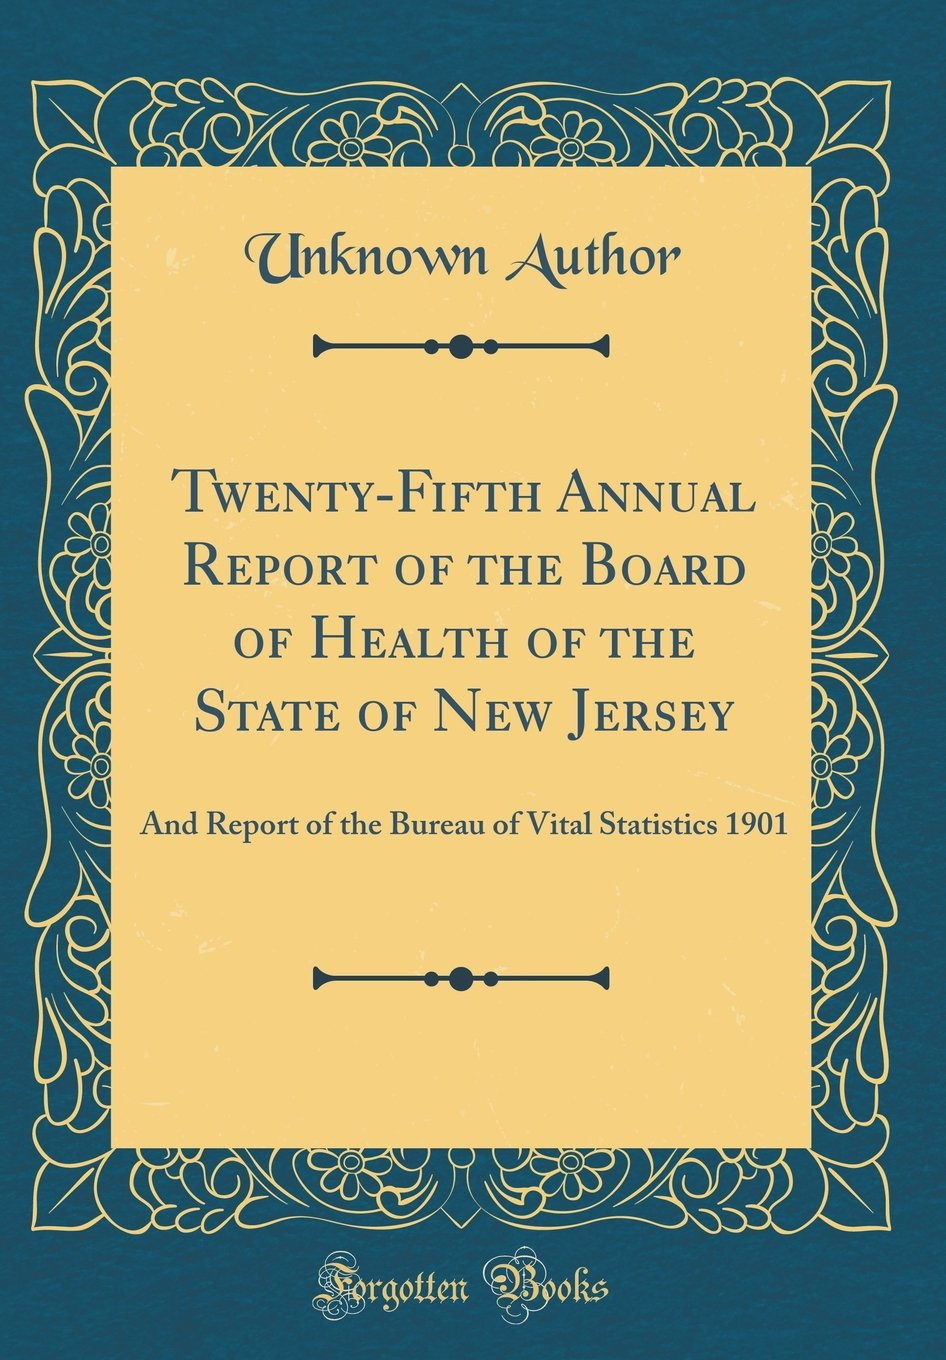 Twenty-Fifth Annual Report of the Board of Health of the State of New Jersey: And Report of the Bureau of Vital Statistics 1901 (Classic Reprint) pdf